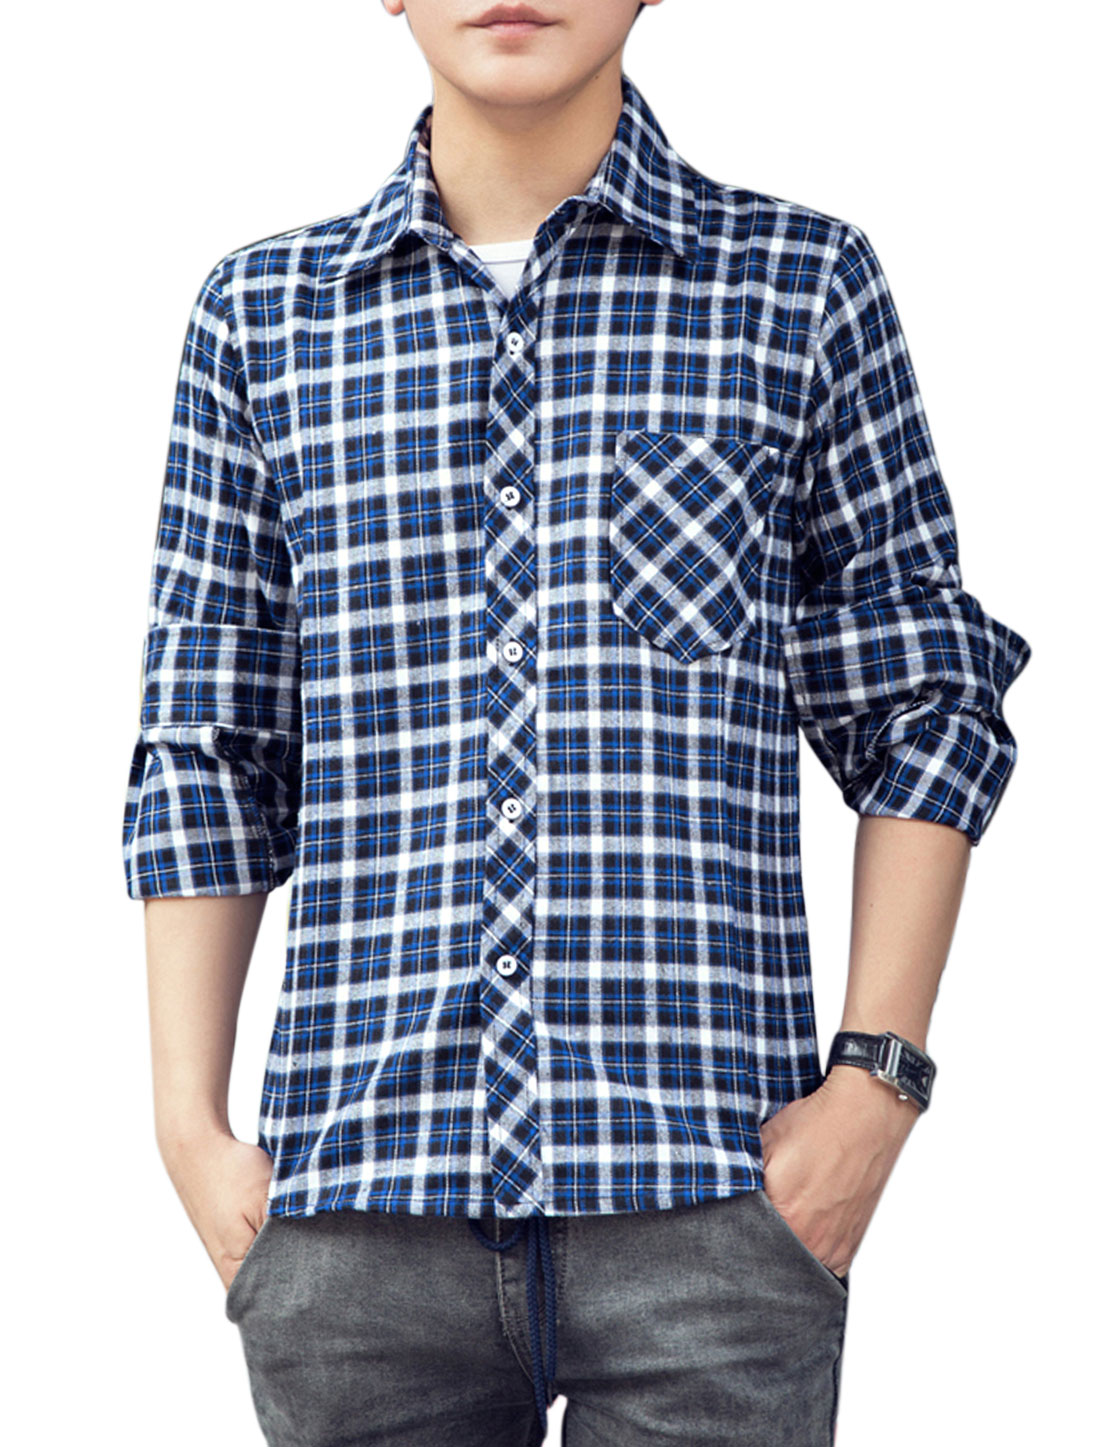 Men Leisure All Over Plaids Breast Pocket Long Sleeve Shirt Blue White M